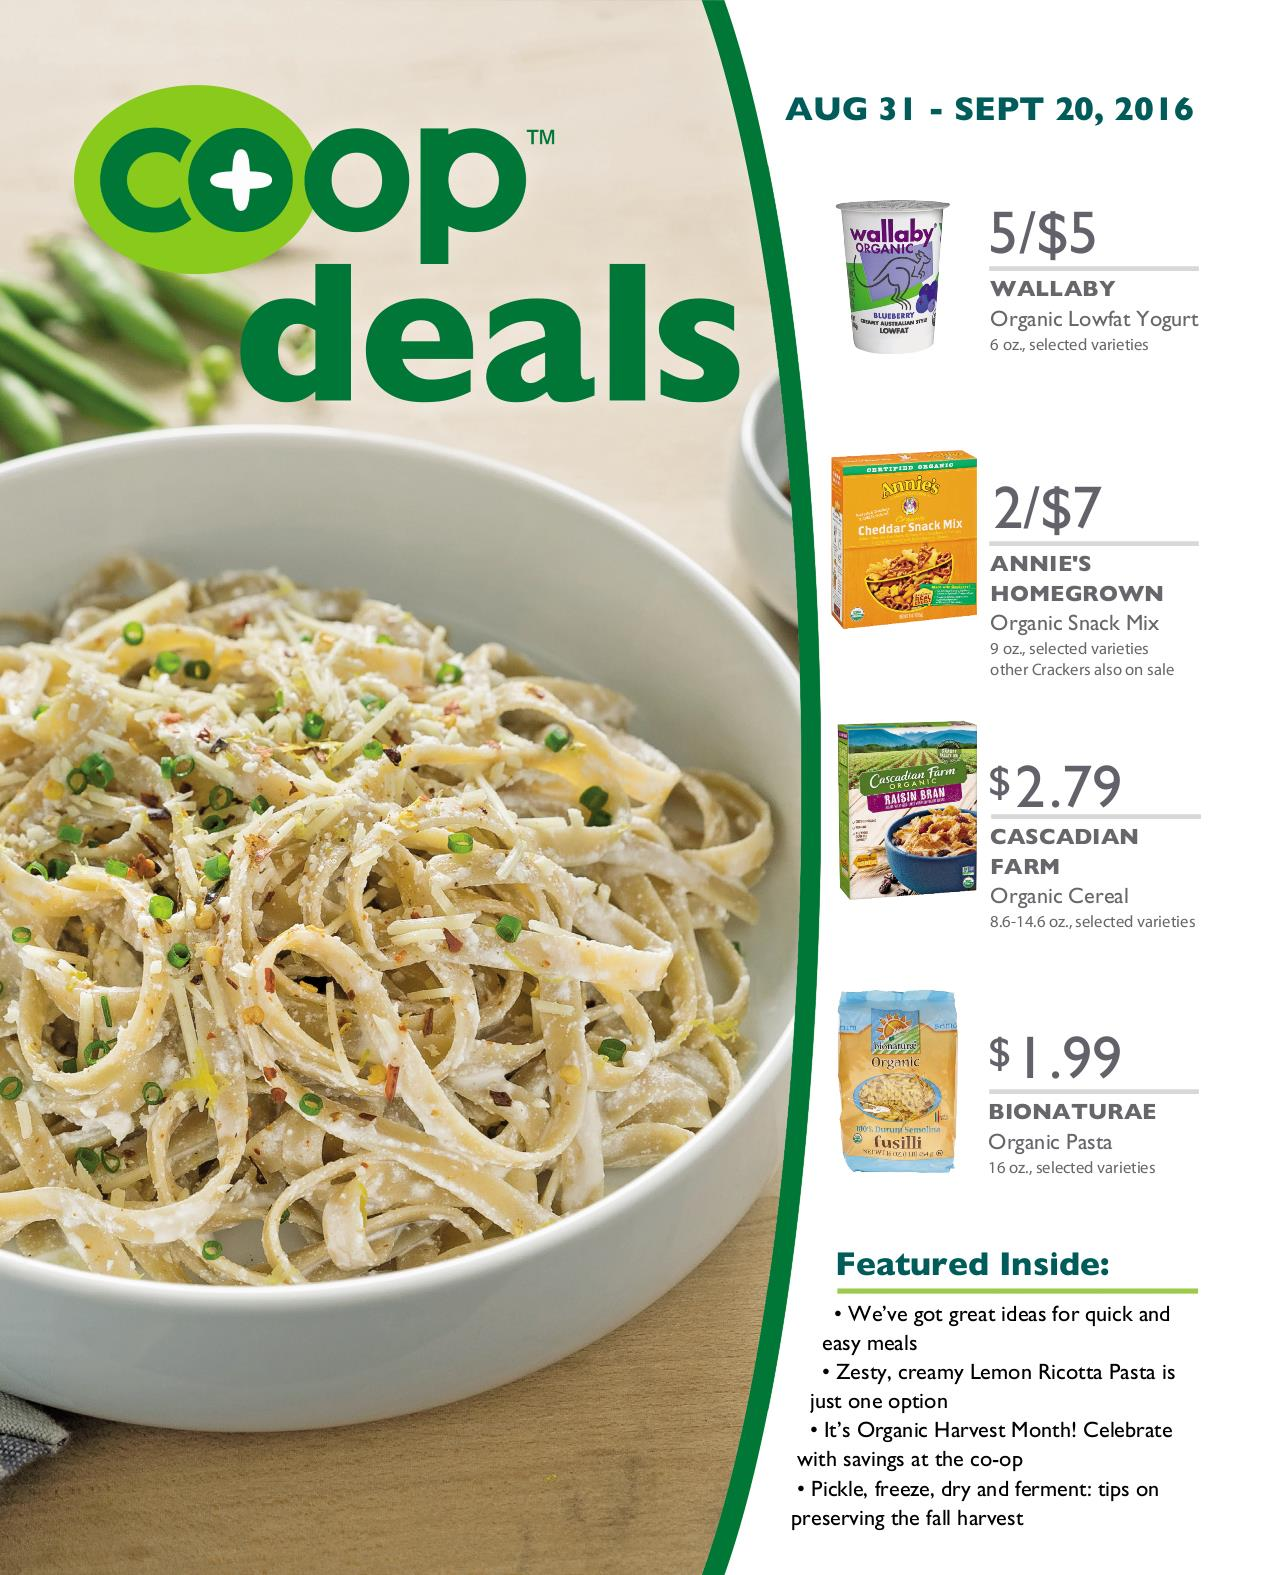 Co+op Deals Sep 2016 Flyer A